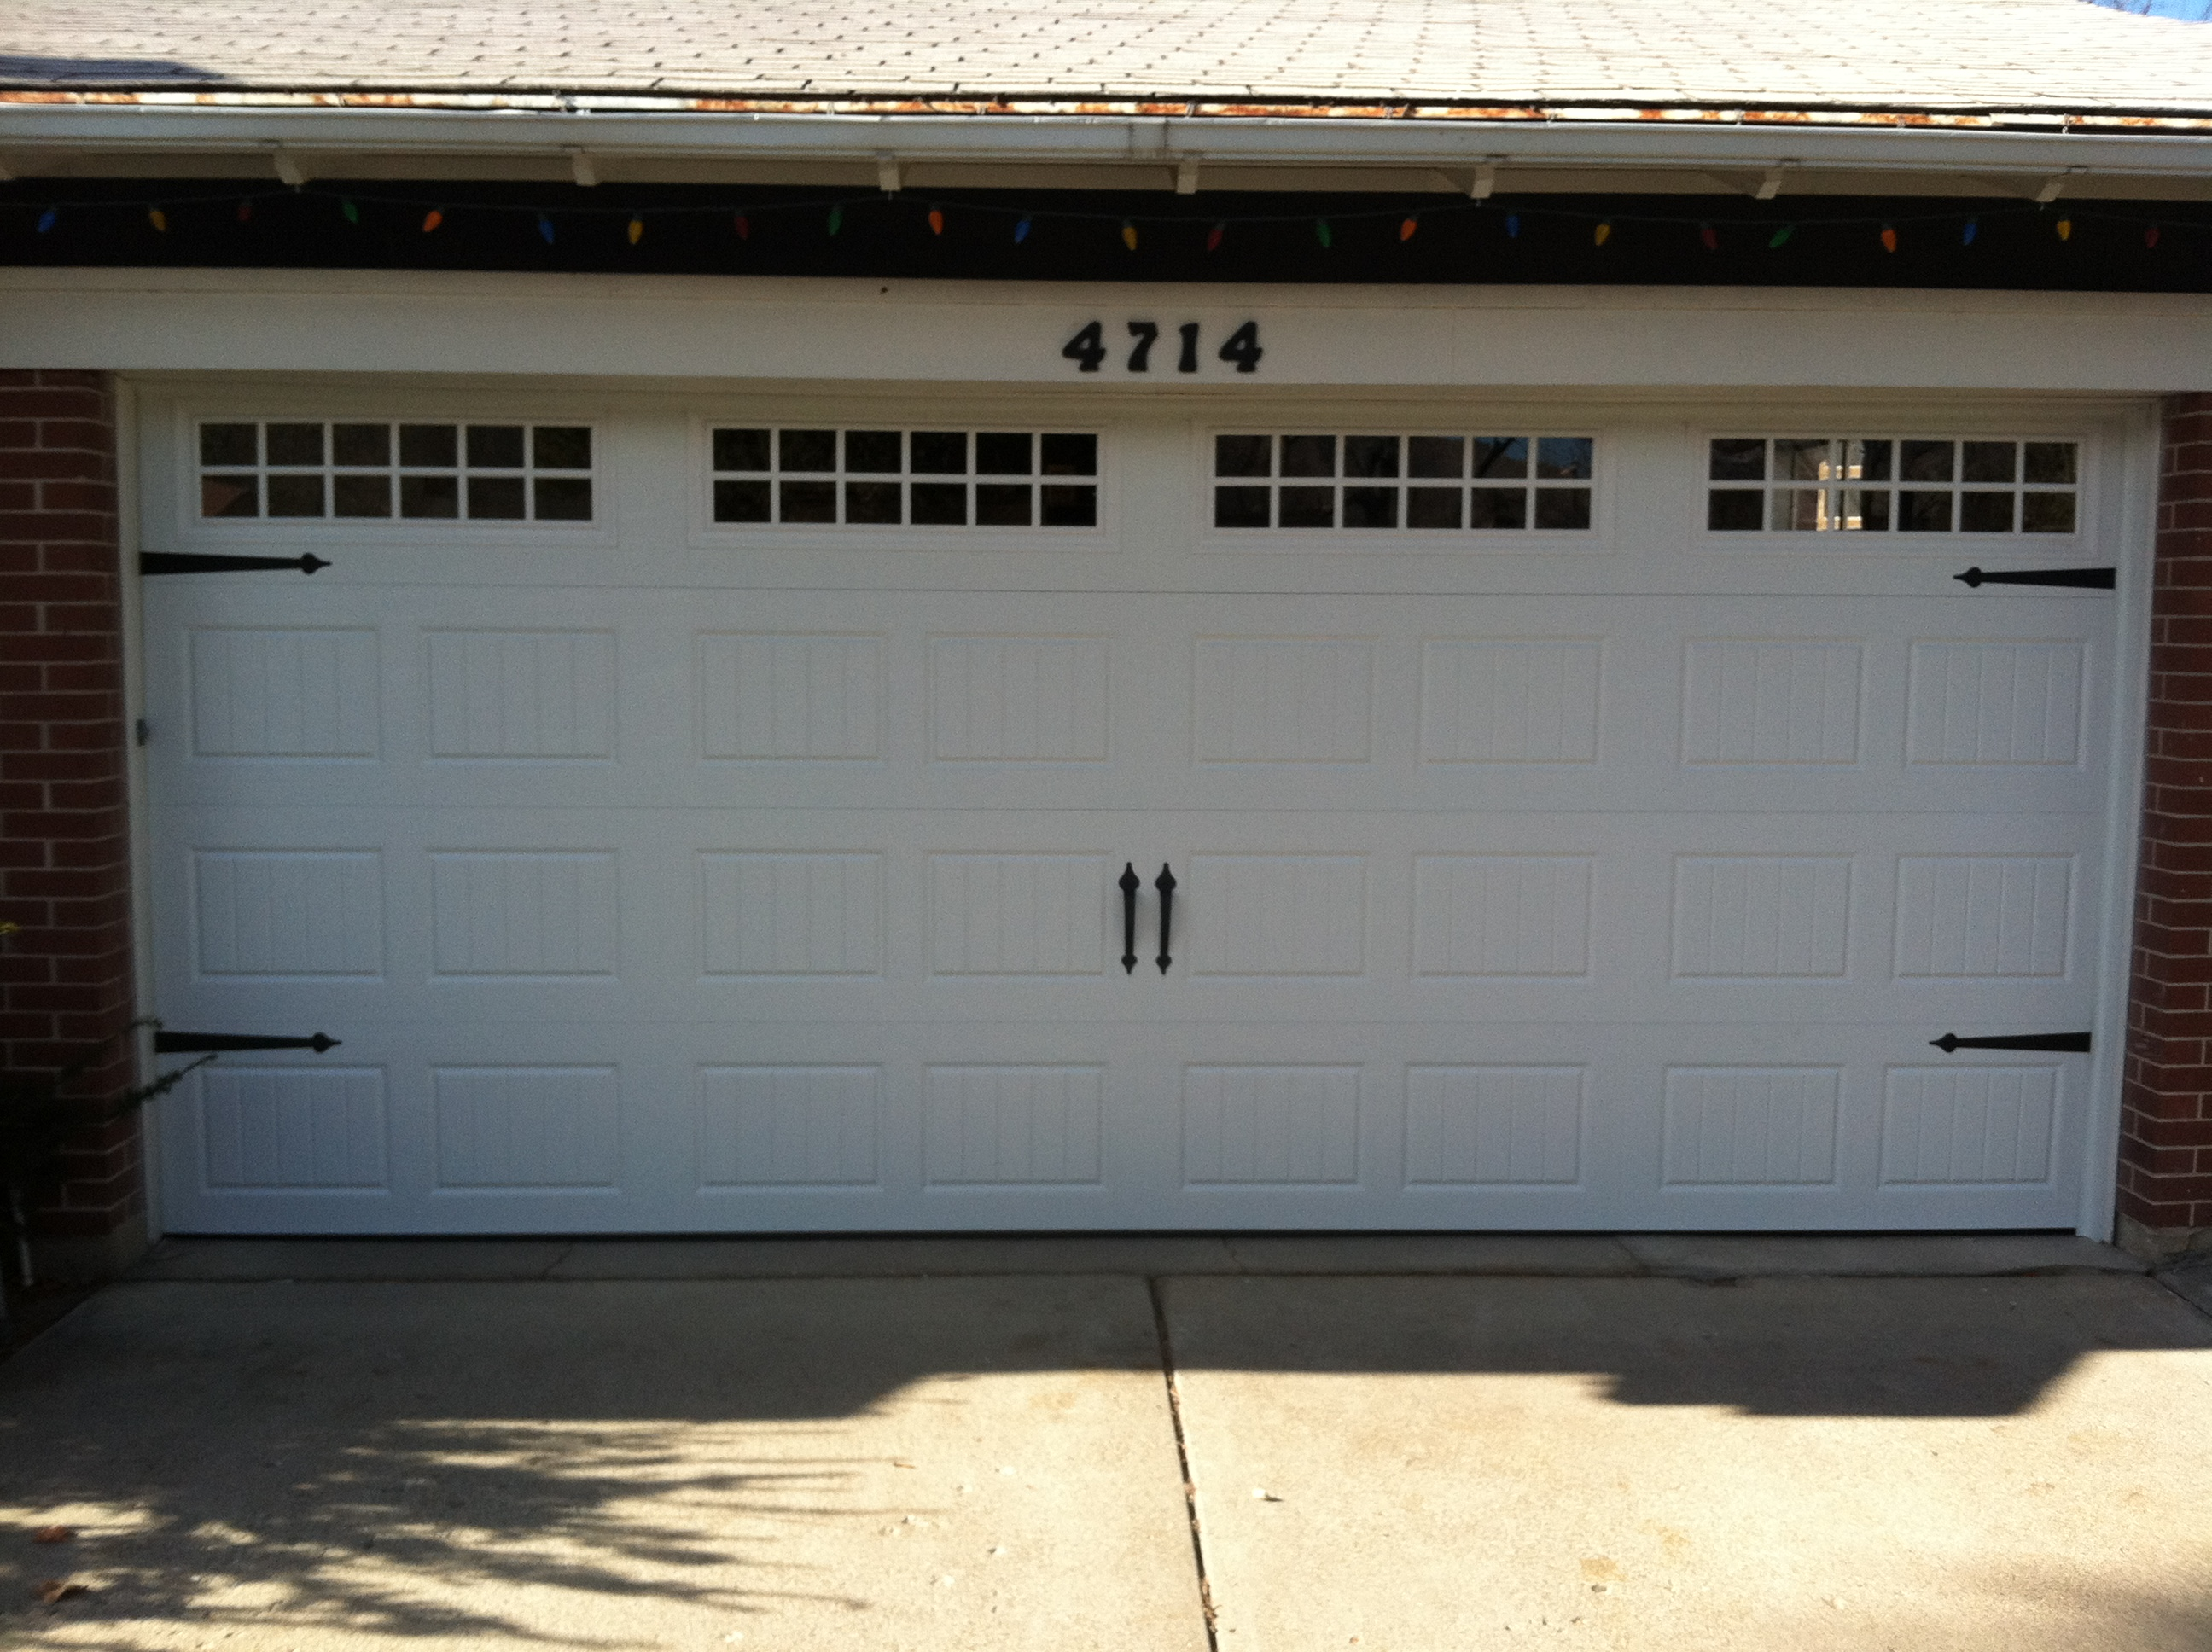 1936 #AA8421 New Door Sales & Installation A Plus Garage Doors image Salt Lake City Garage Doors 36832592